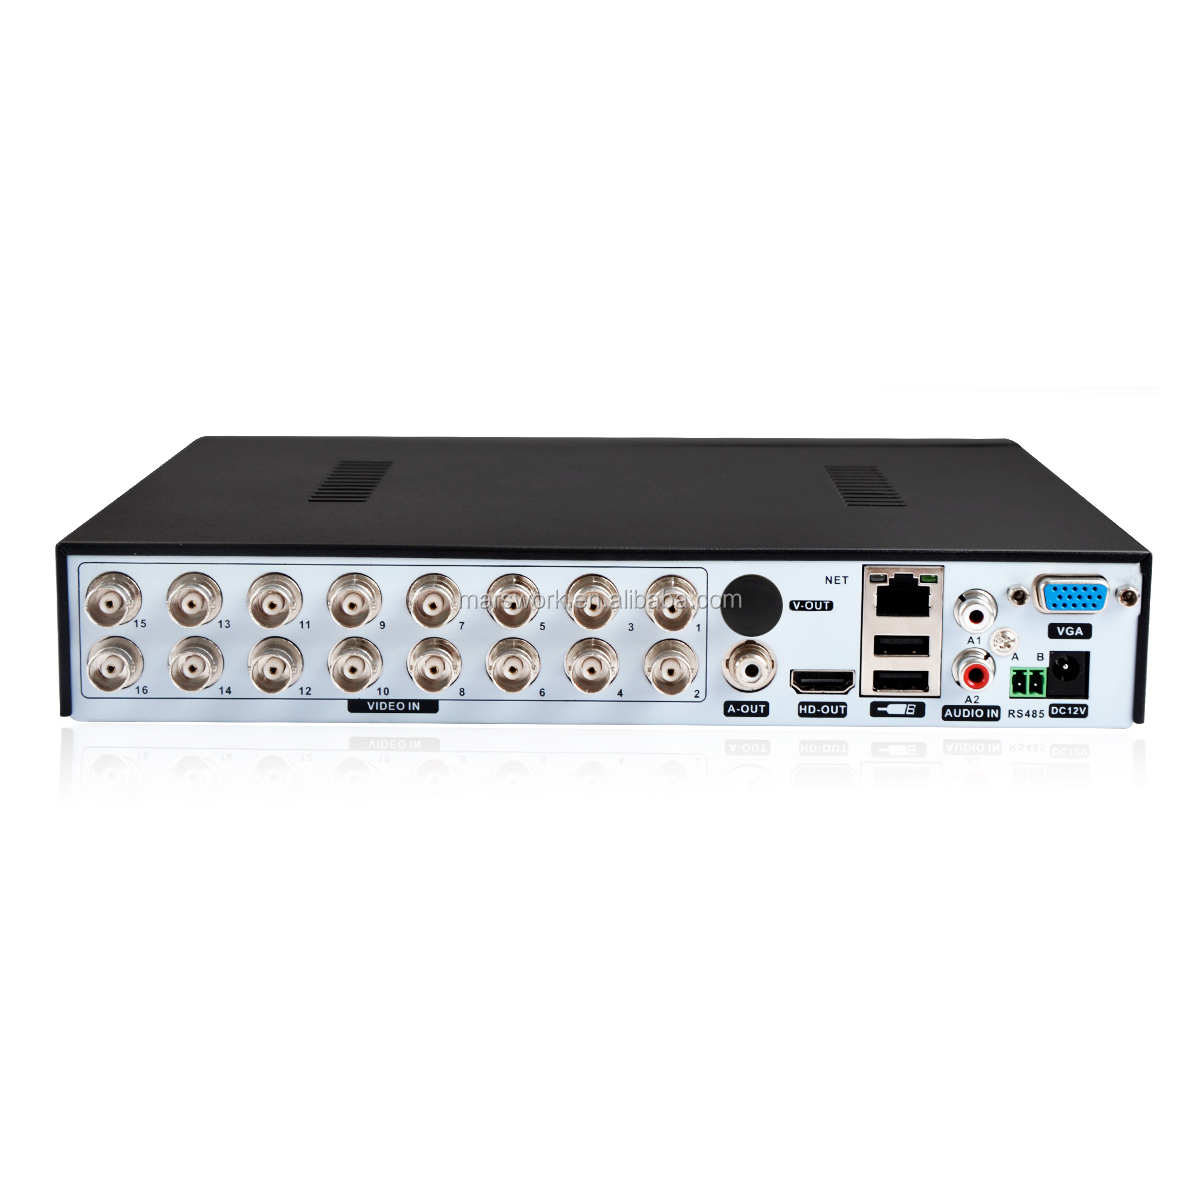 16 Channels <strong>DVR</strong> 1080n cctv 5 in 1 <strong>DVR</strong> H.265 Digital Video Recording Motion Detection